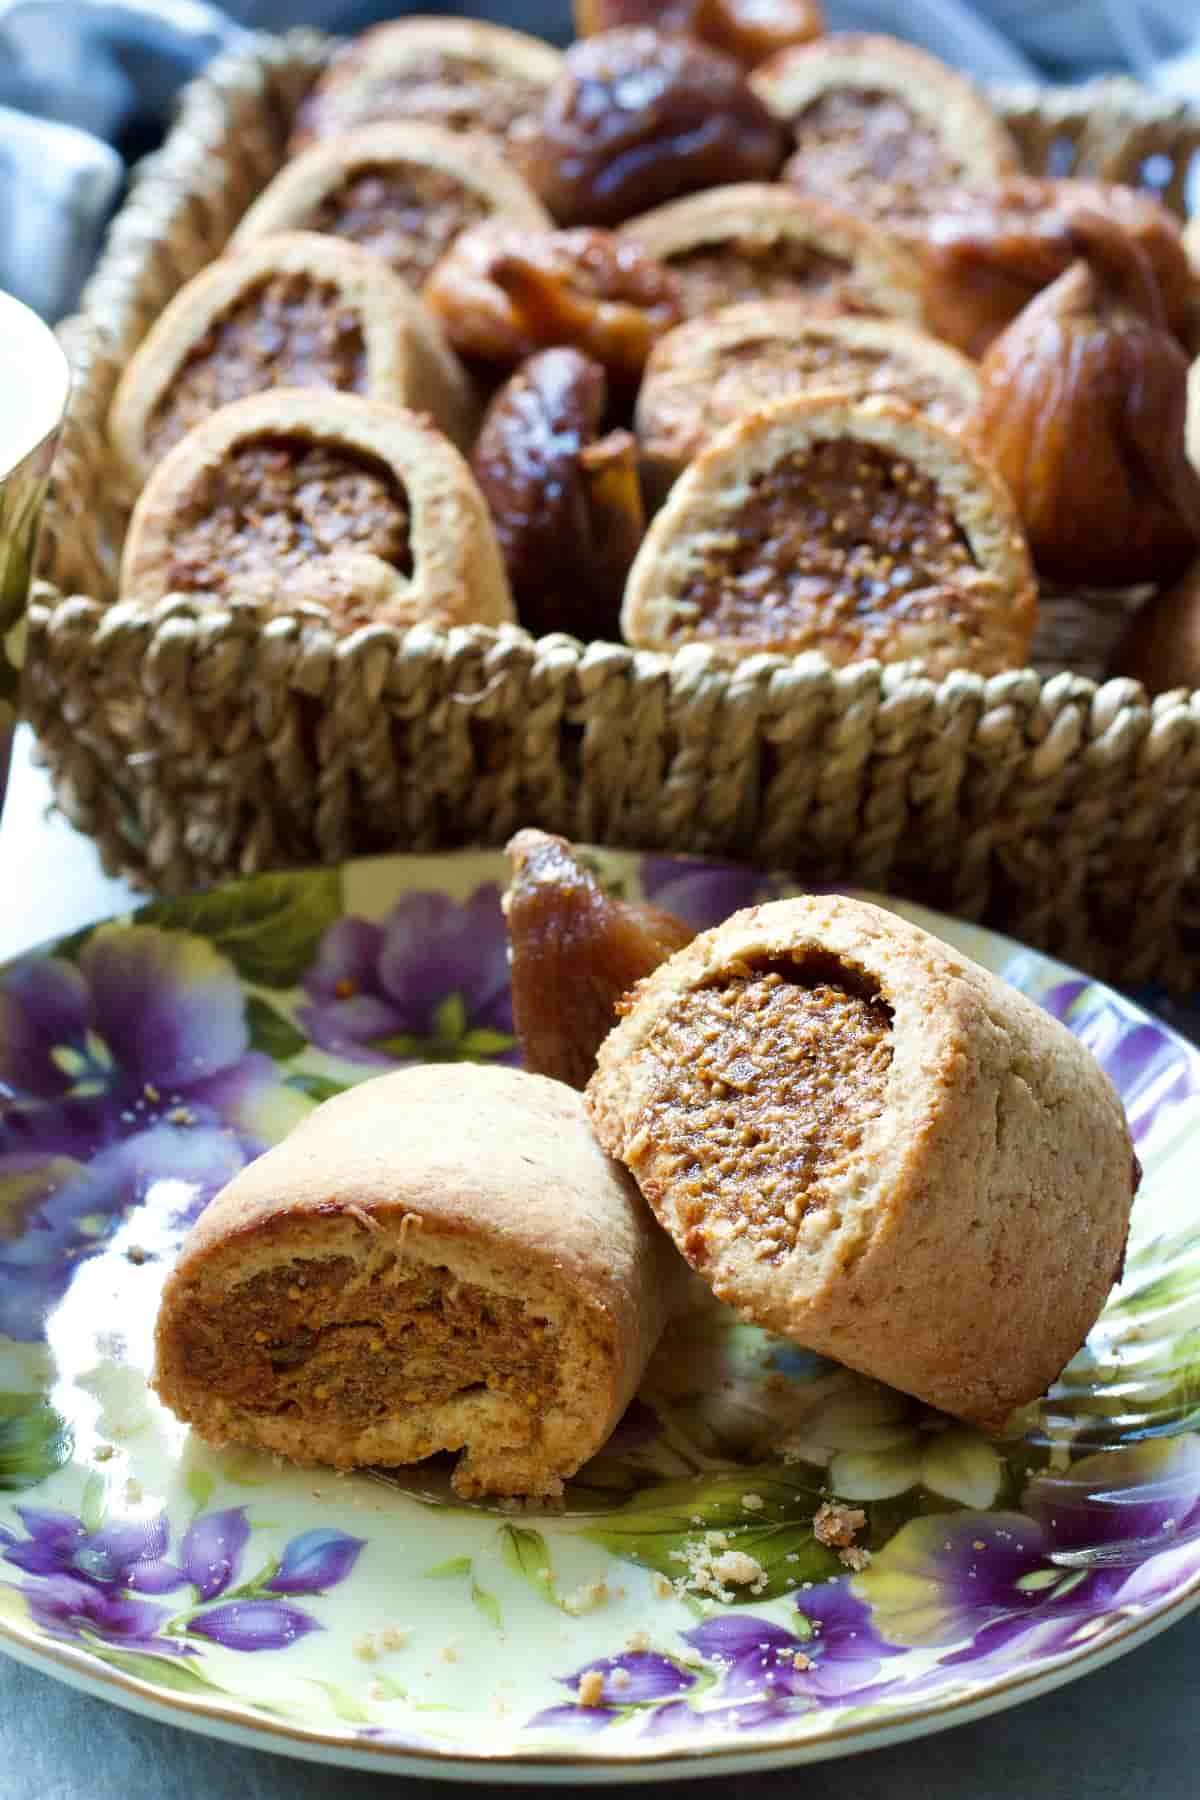 Two fig rolls on a plate with basket full of fig rolls behind.